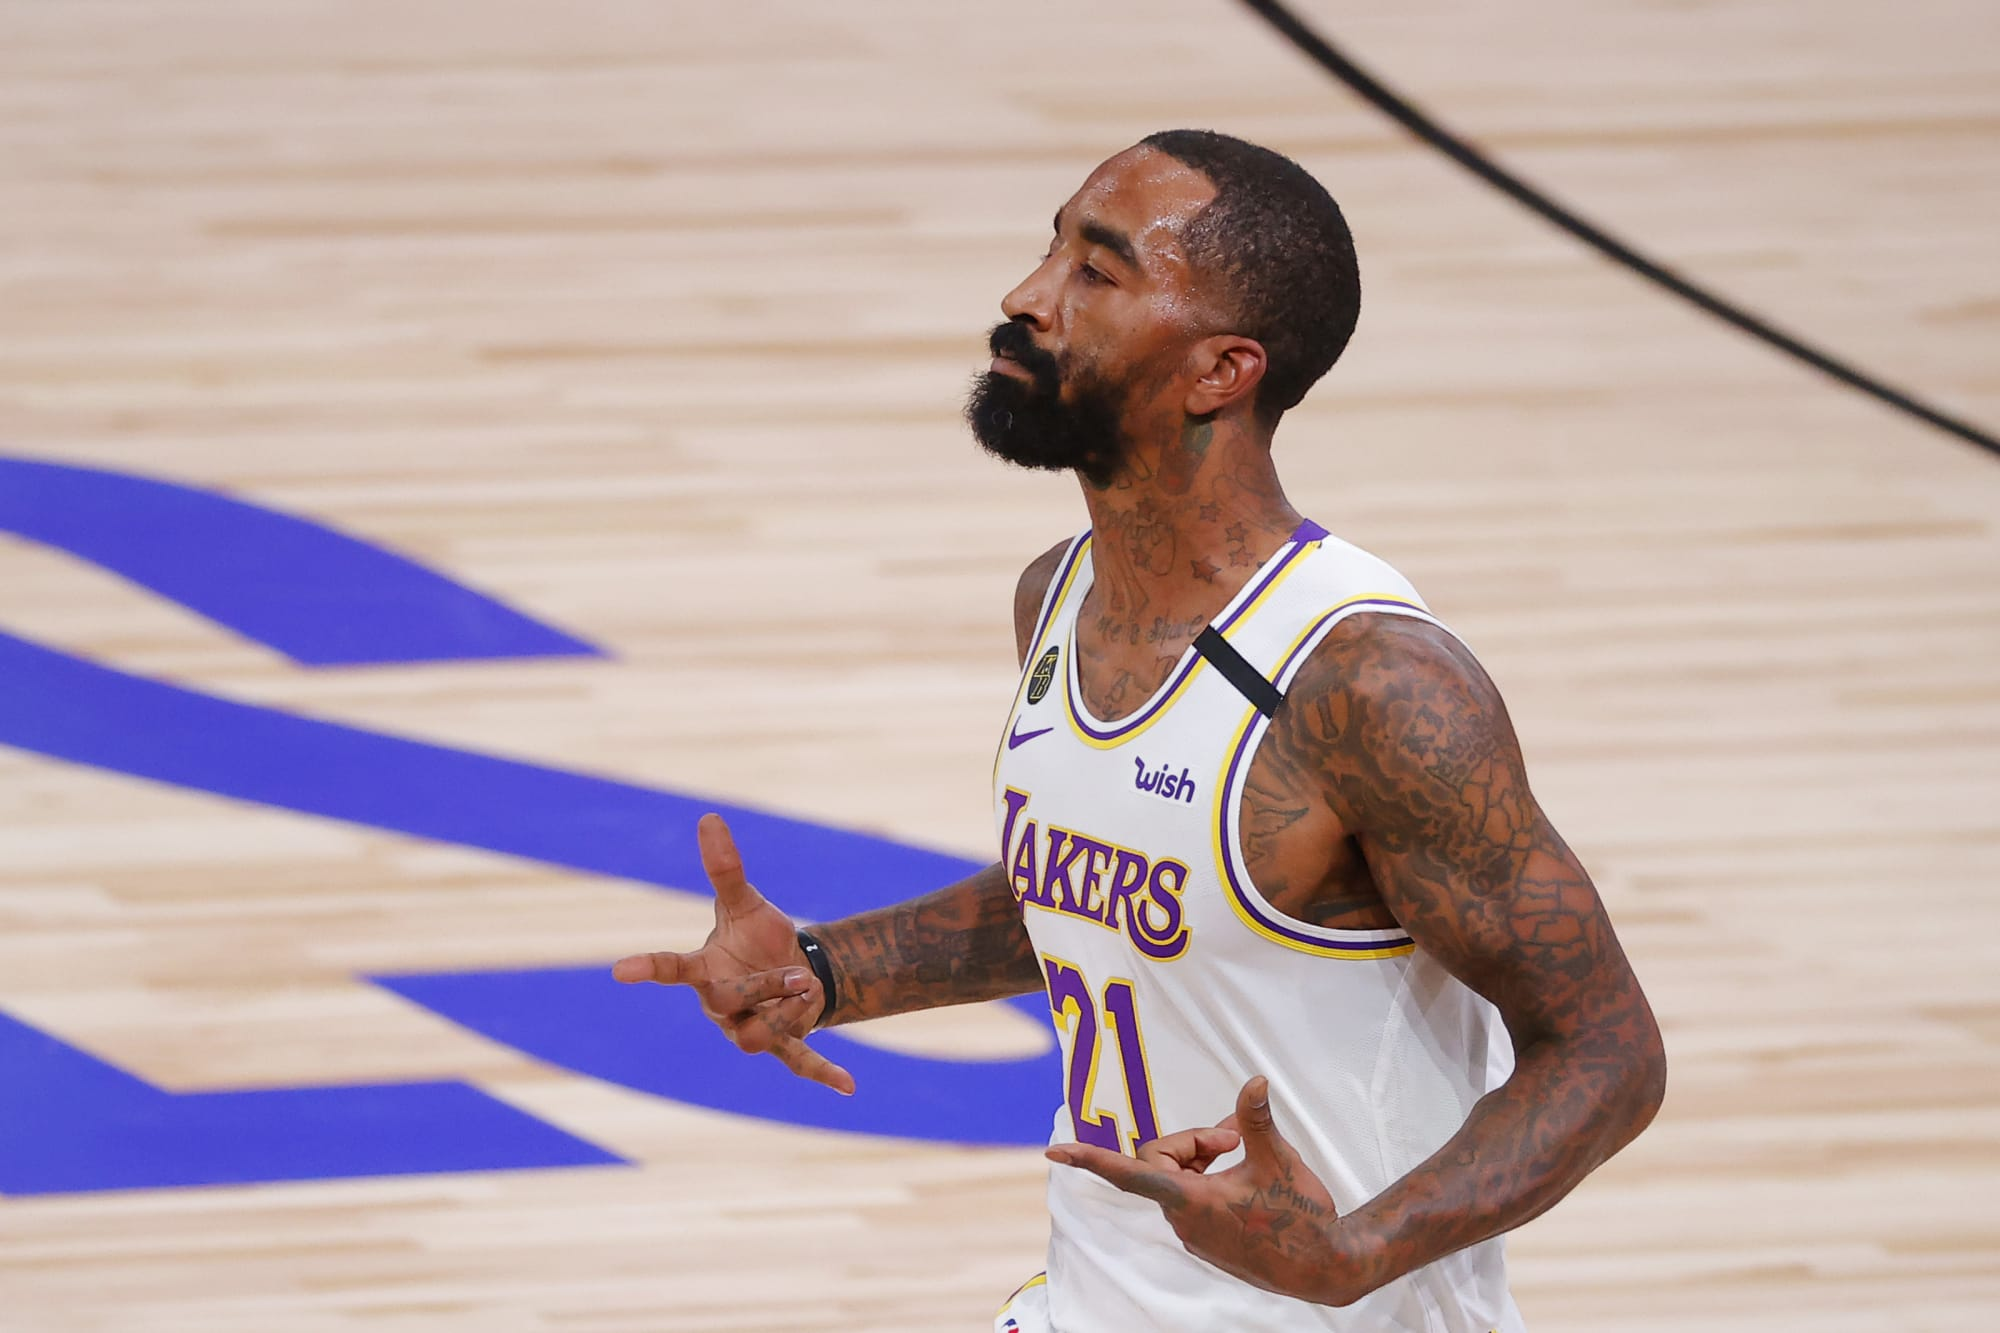 J.R. Smith shows up to Game 4 in most J.R. Smith way possible